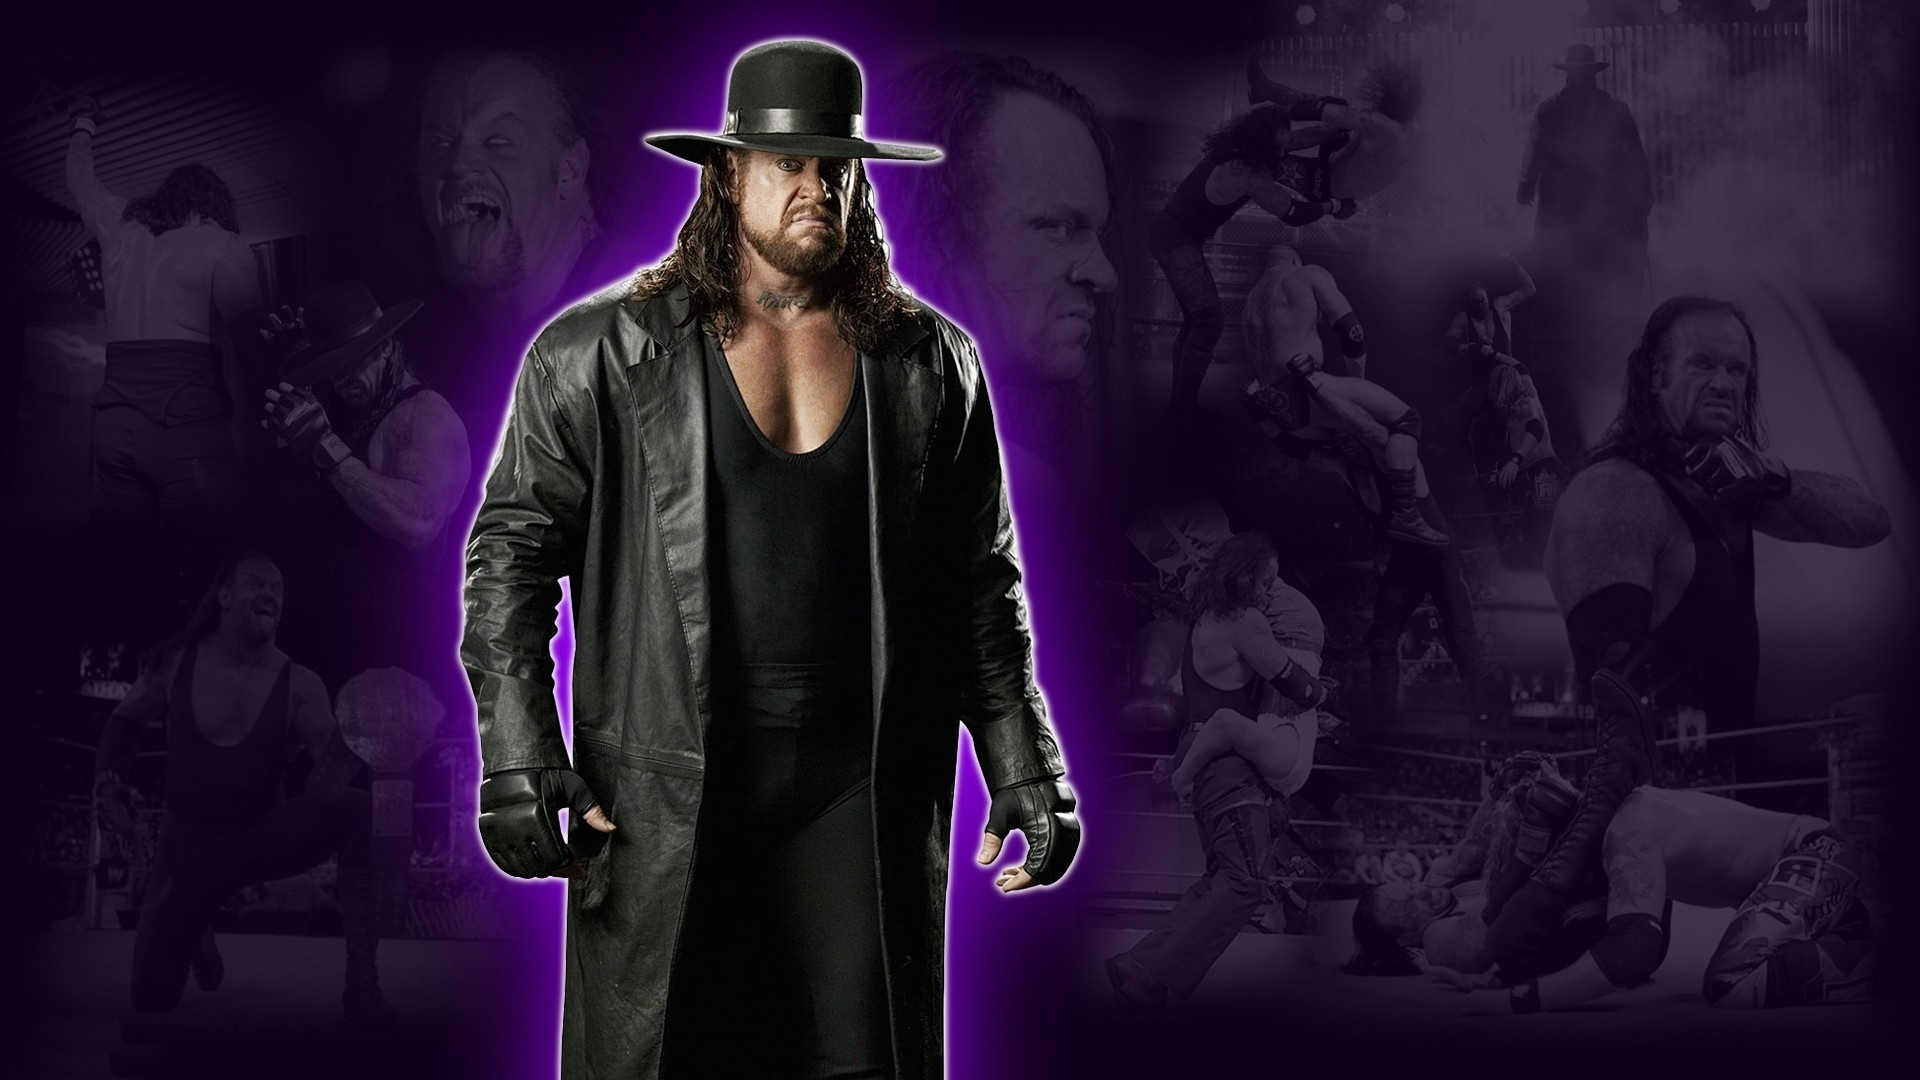 Undertaker desktop background